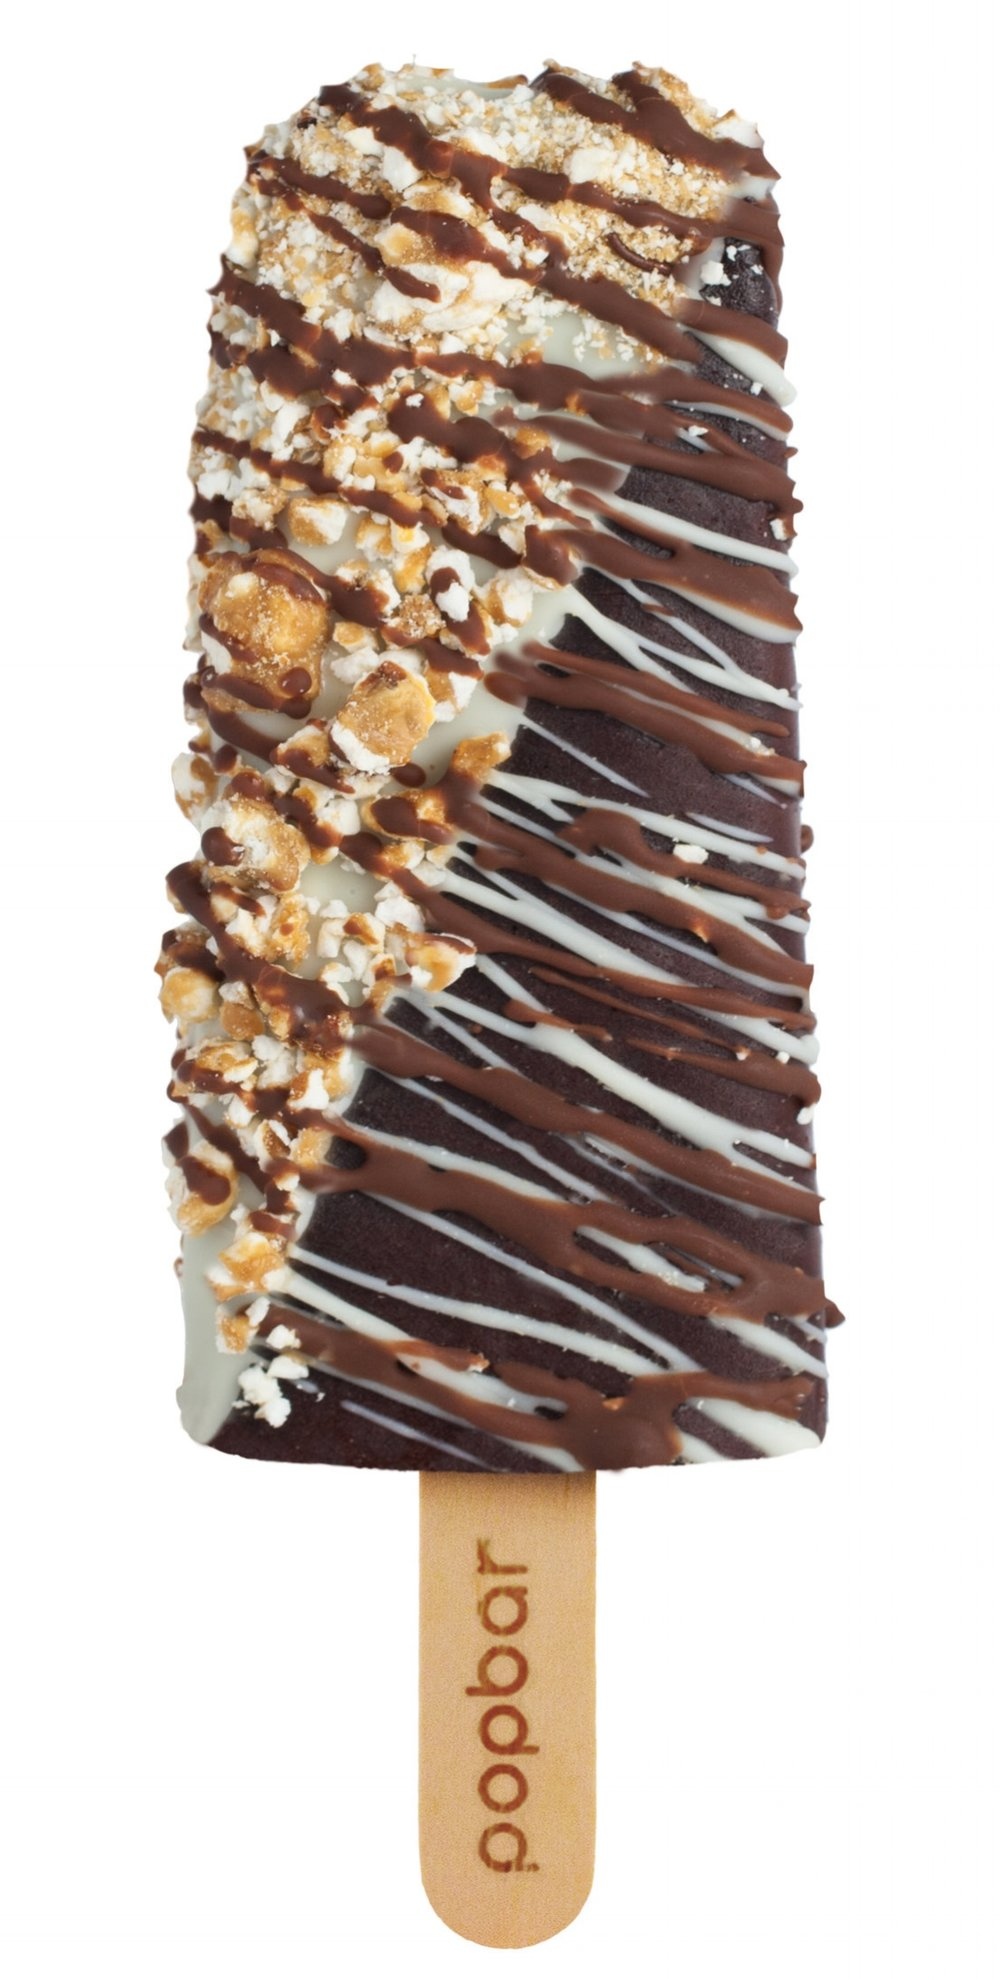 chocolate and caramel covered popcorn.jpg